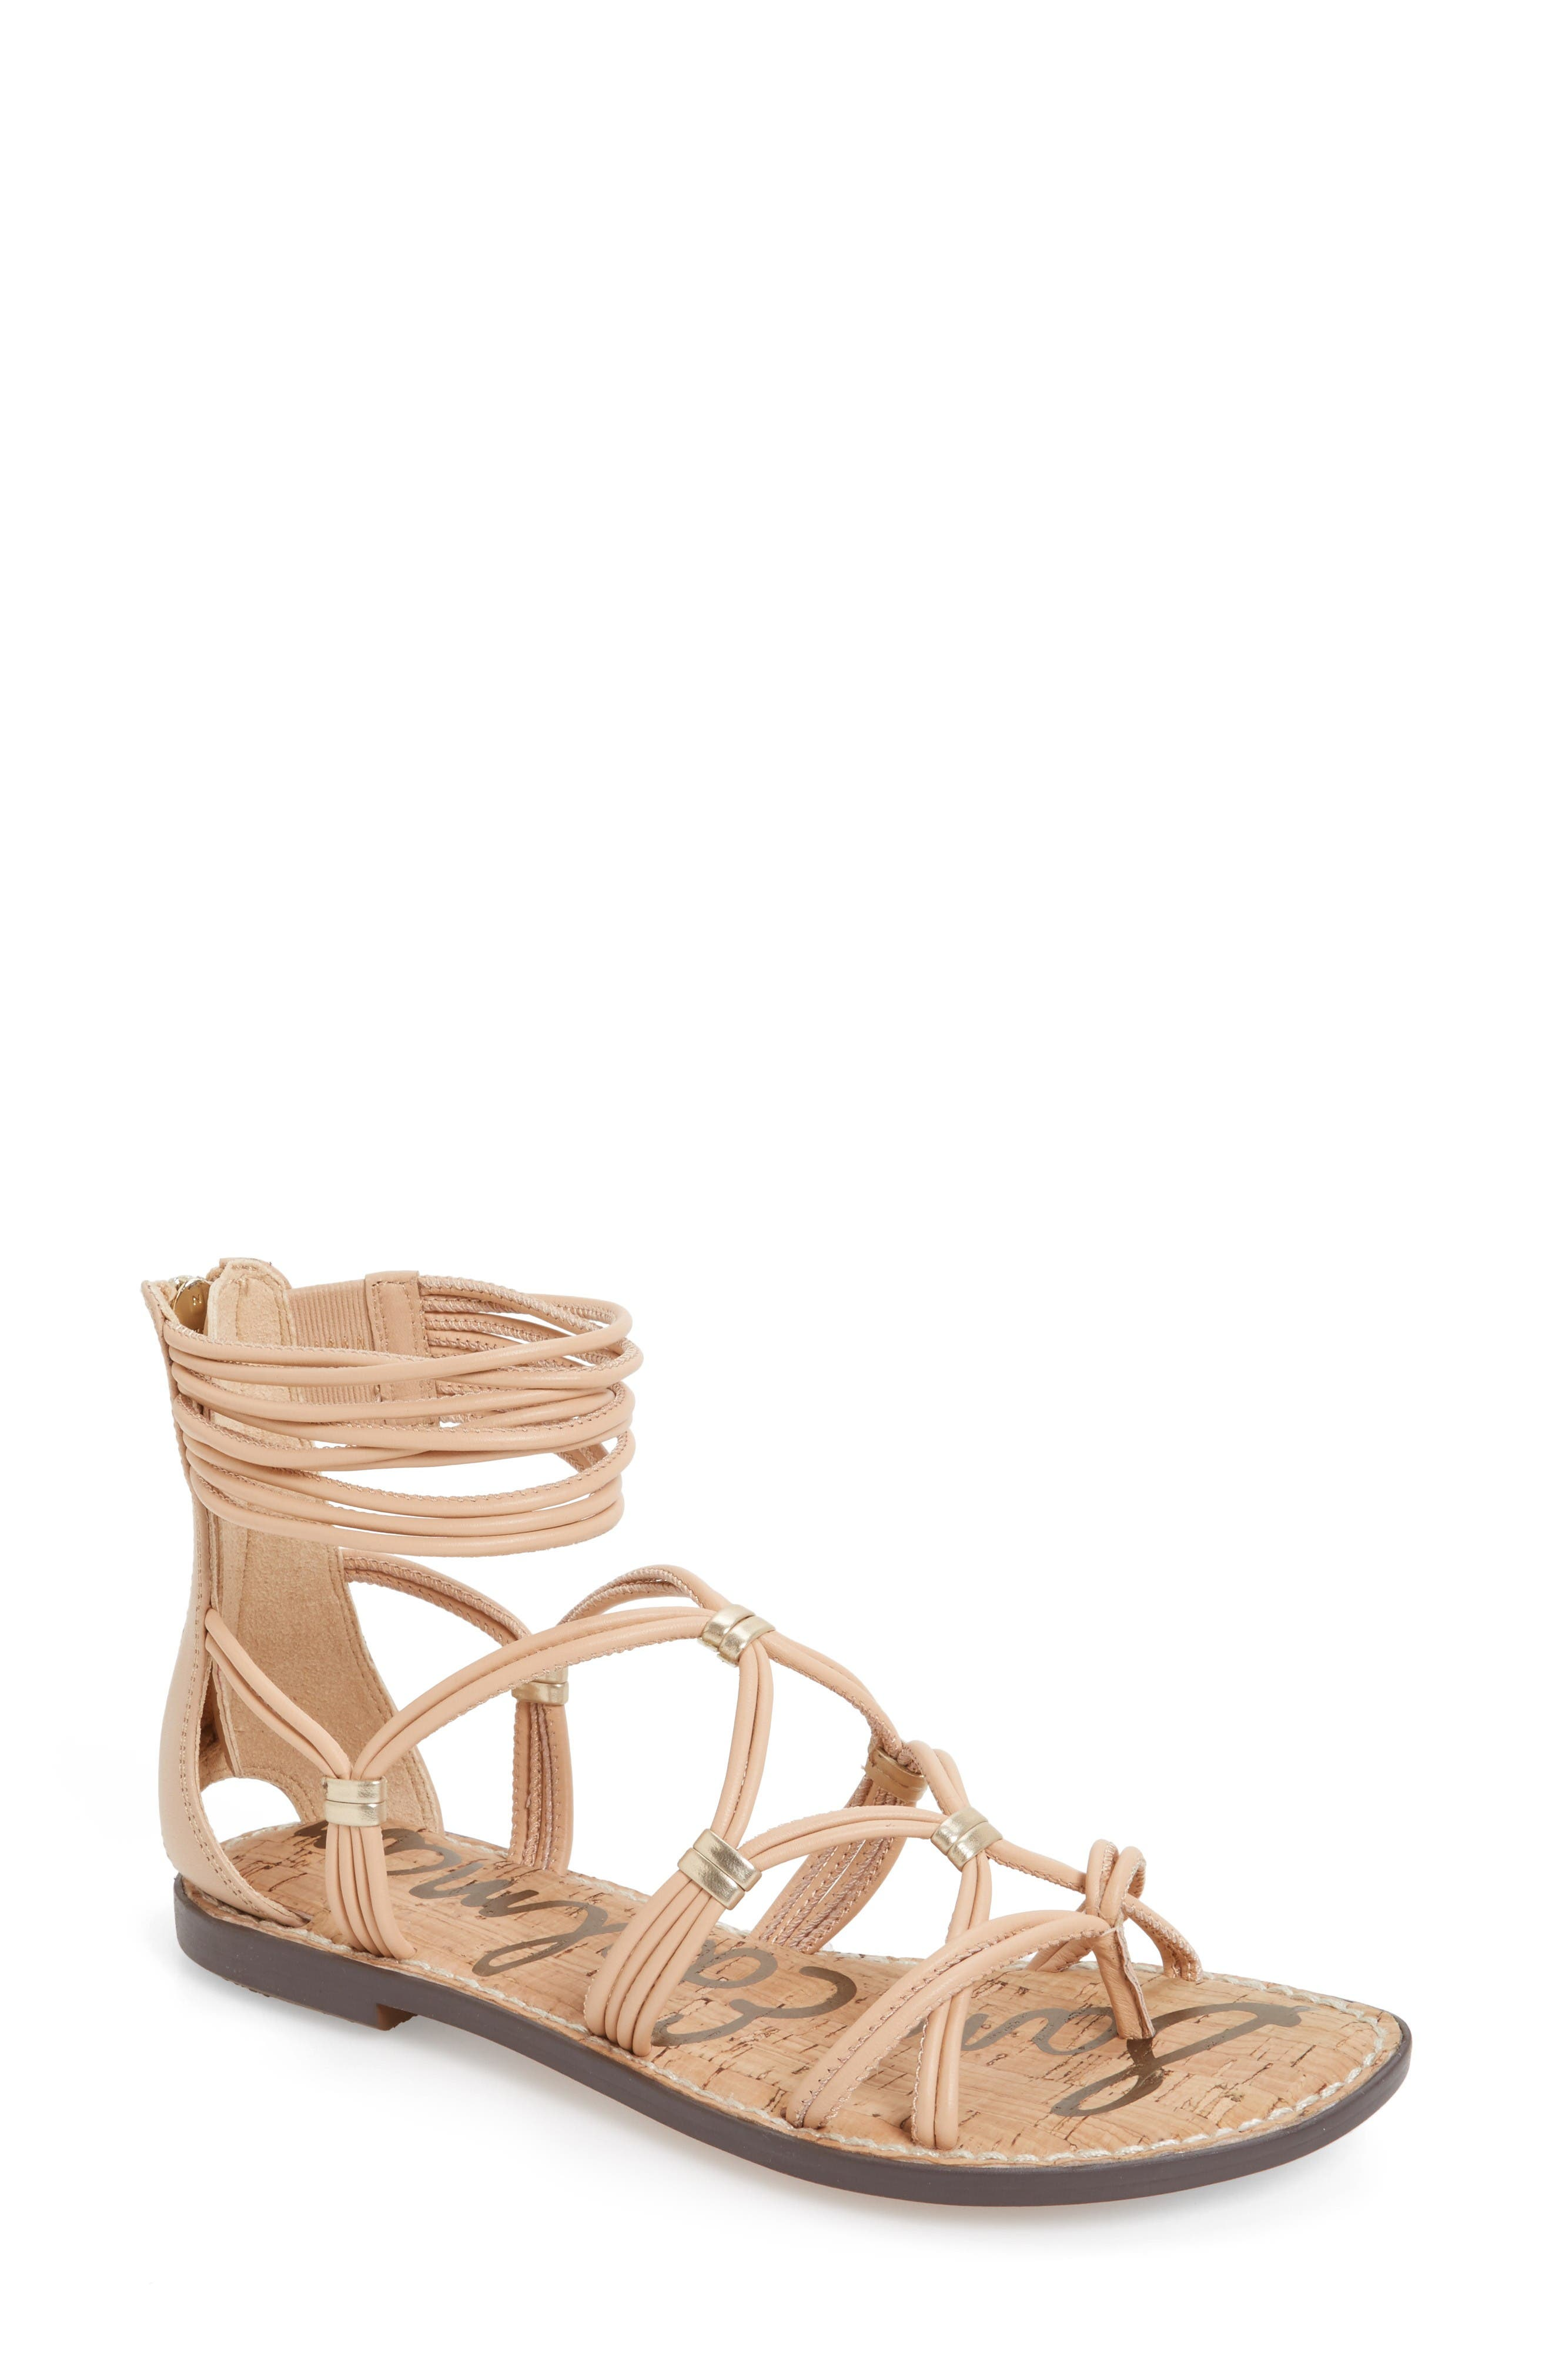 Main Image - Sam Edelman Gianni Sandal (Women)